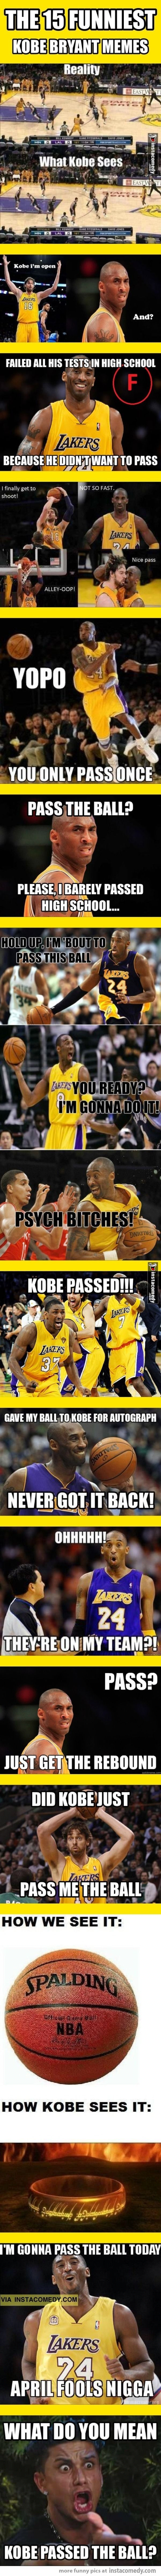 The 15 funniest Kobe Bryant memes funny as hell